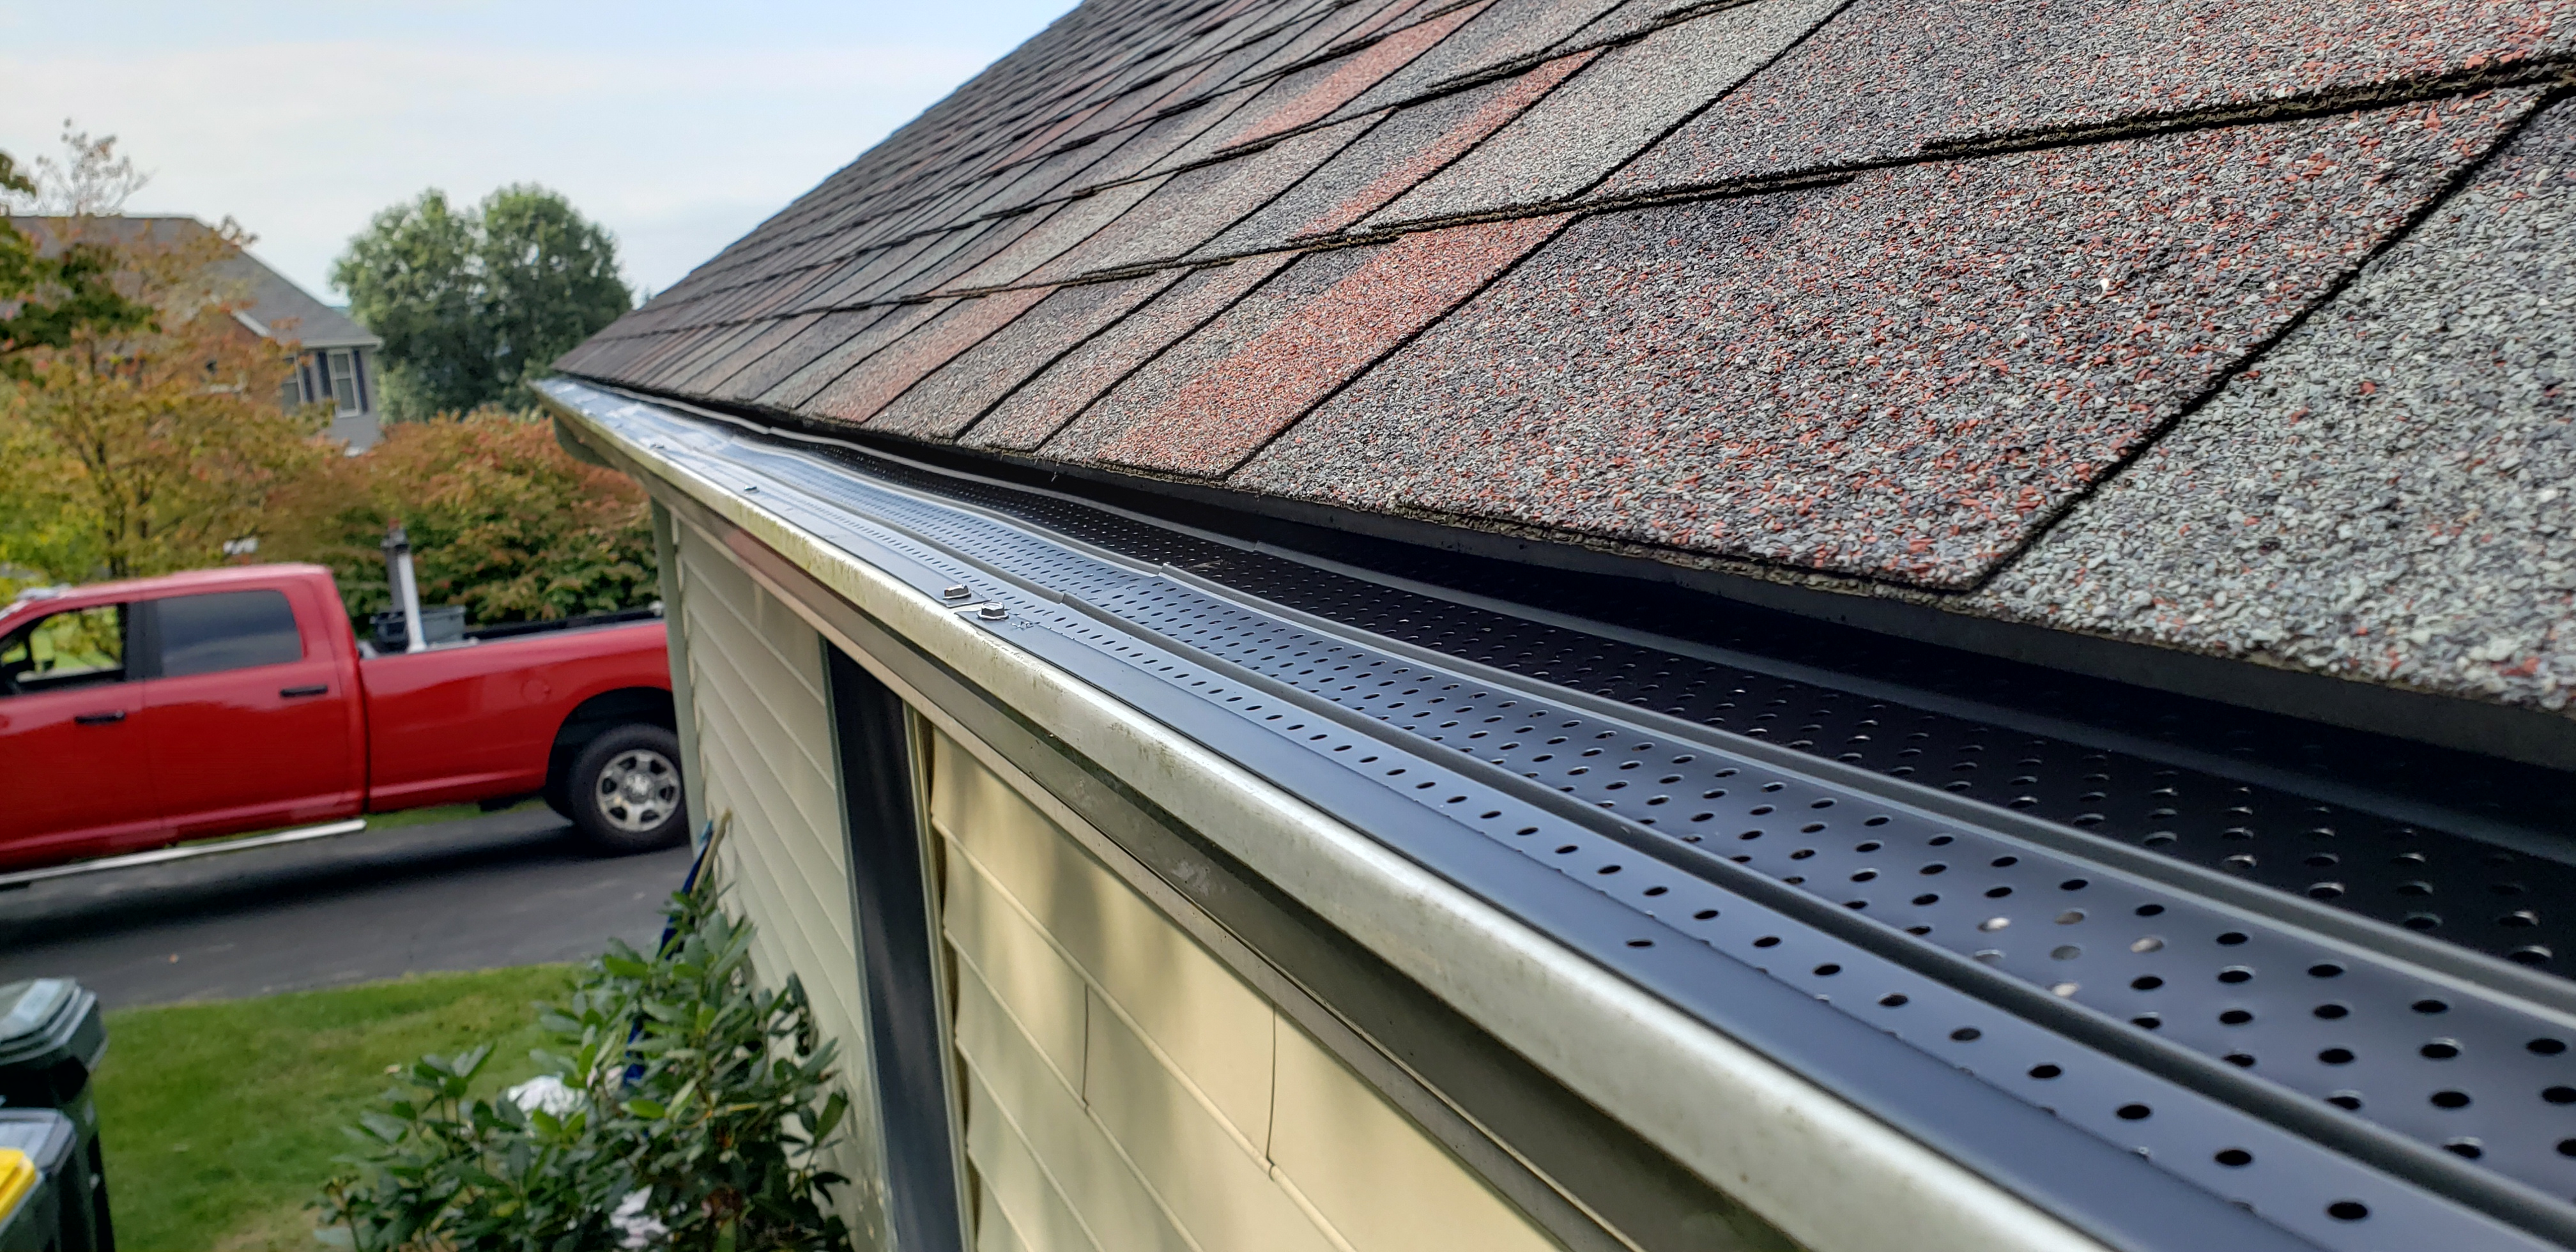 Flexxpoint gutter guards eliminate the need to clean gutters